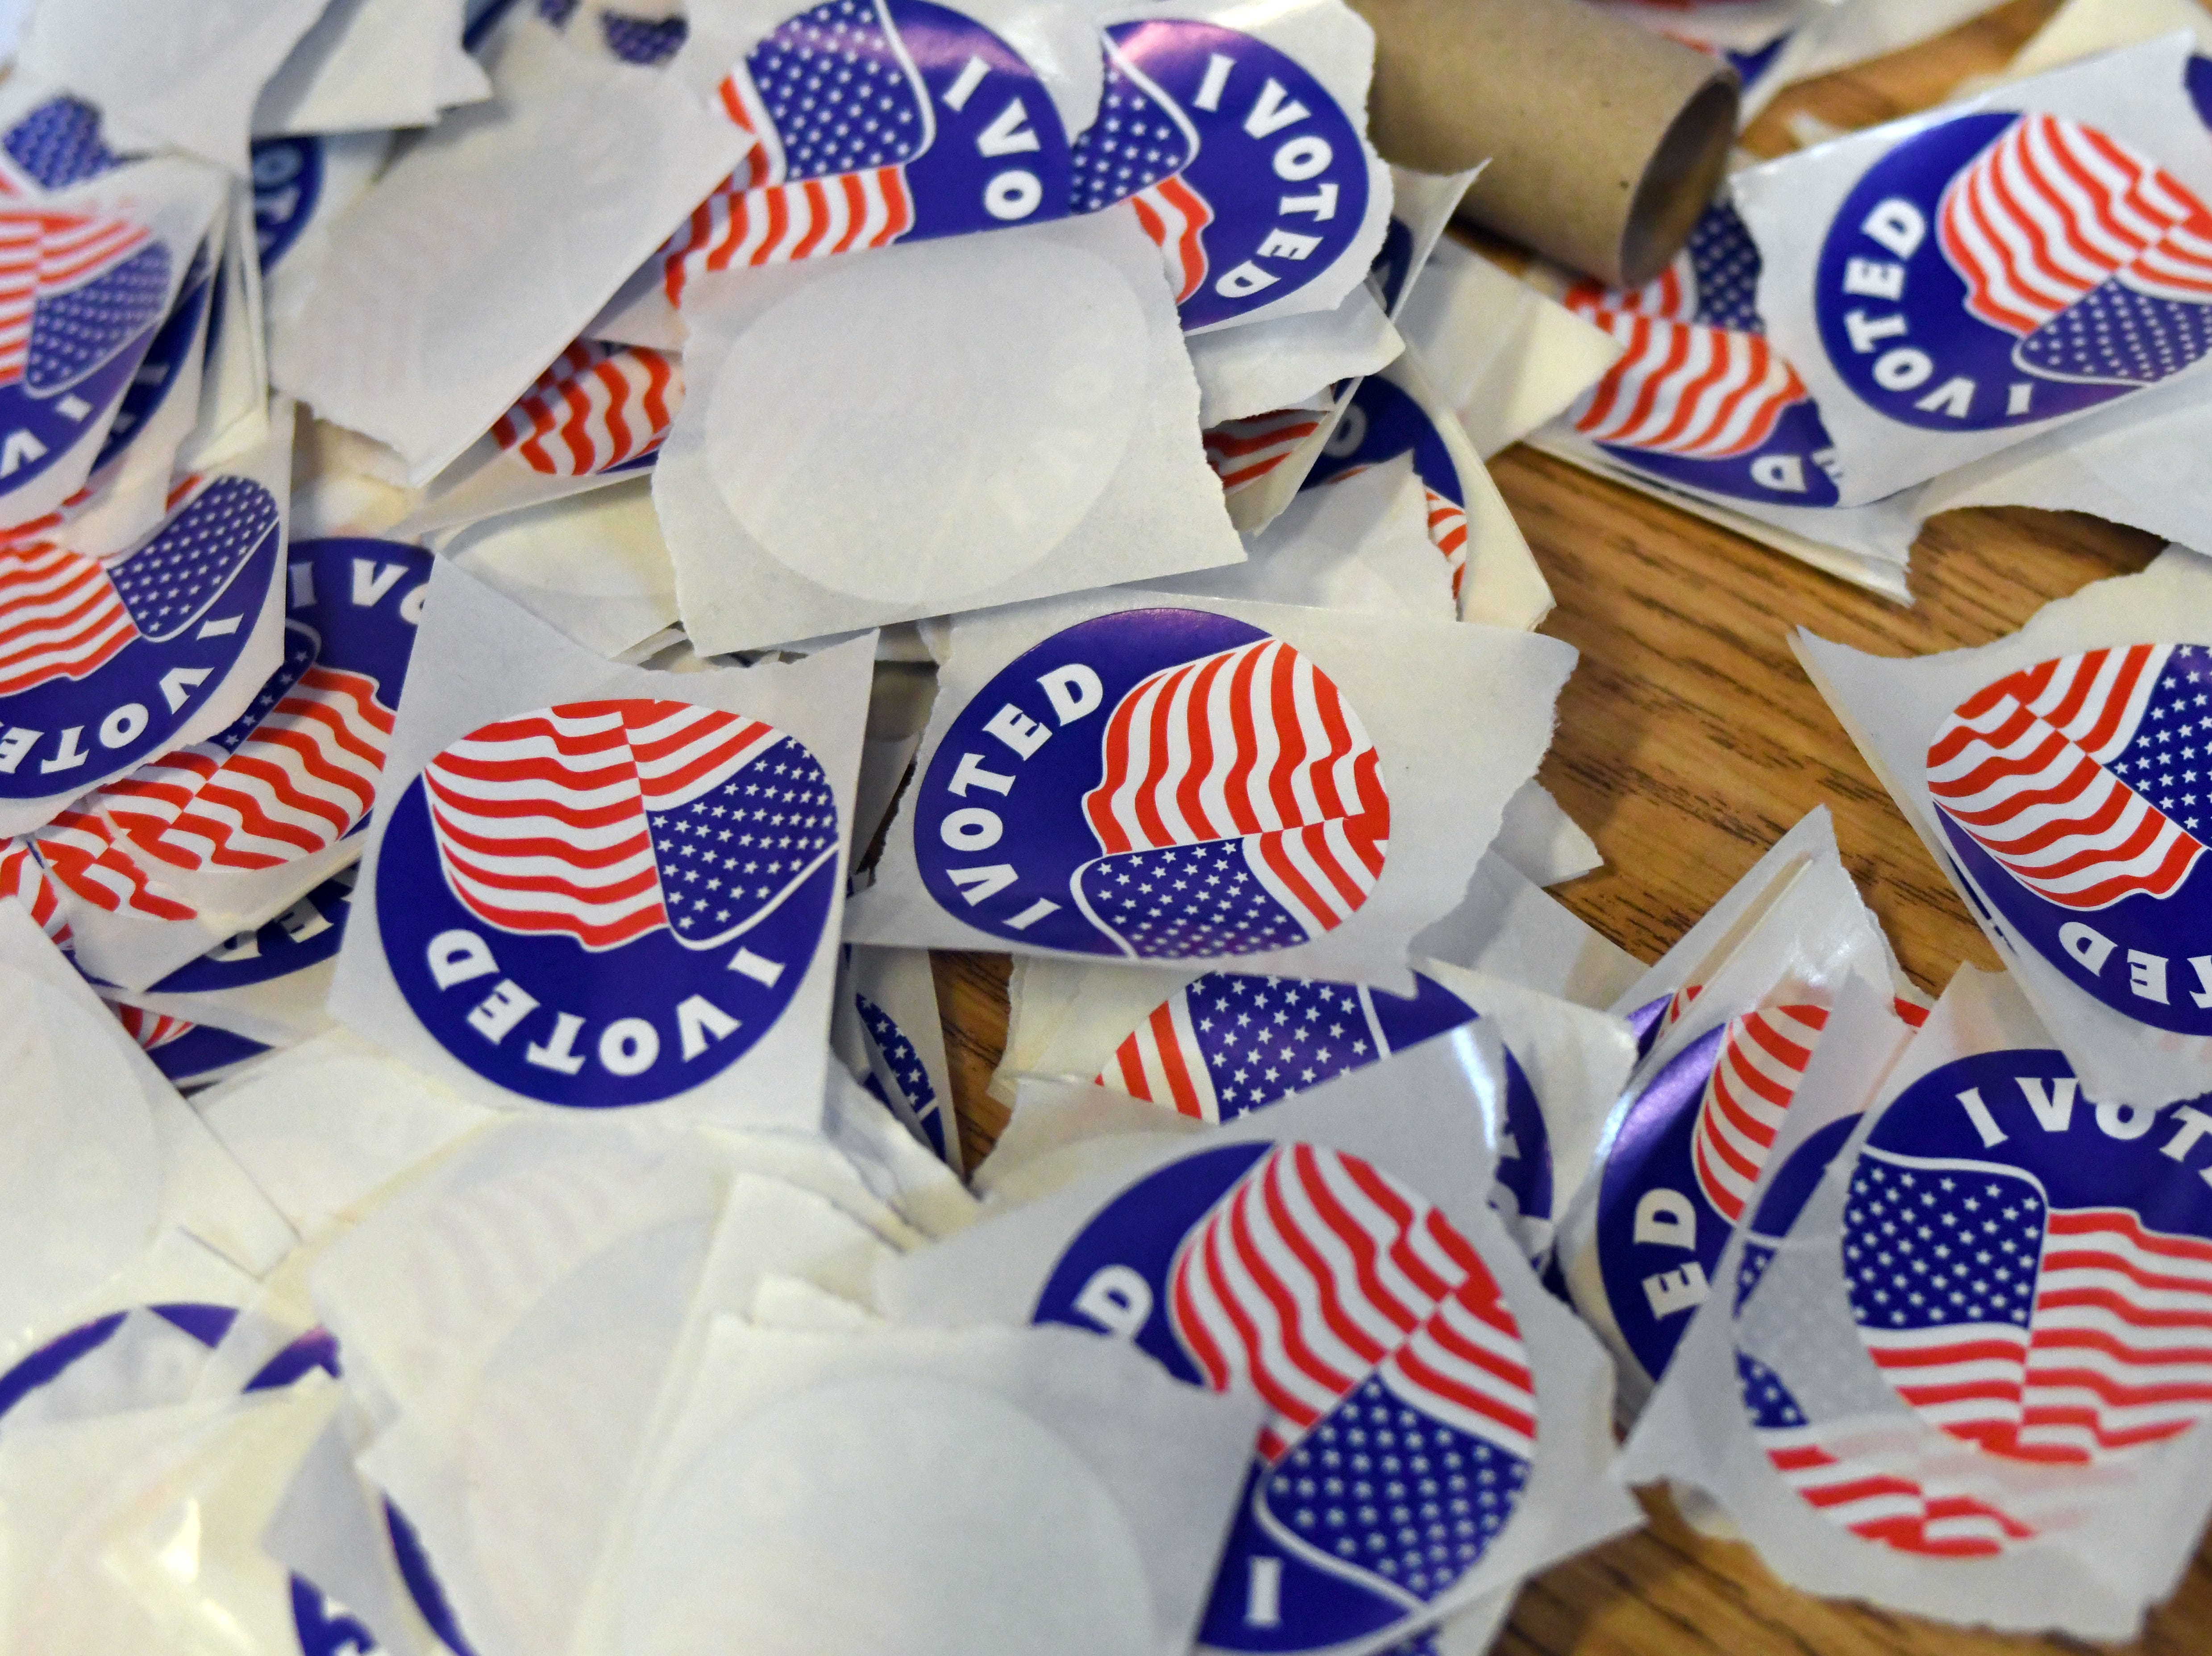 """A collection of """"I Voted"""" stickers wait to be taken as Hattiesburg residents come to vote at the Kamper Park precinct on Tuesday, November 6, 2018."""